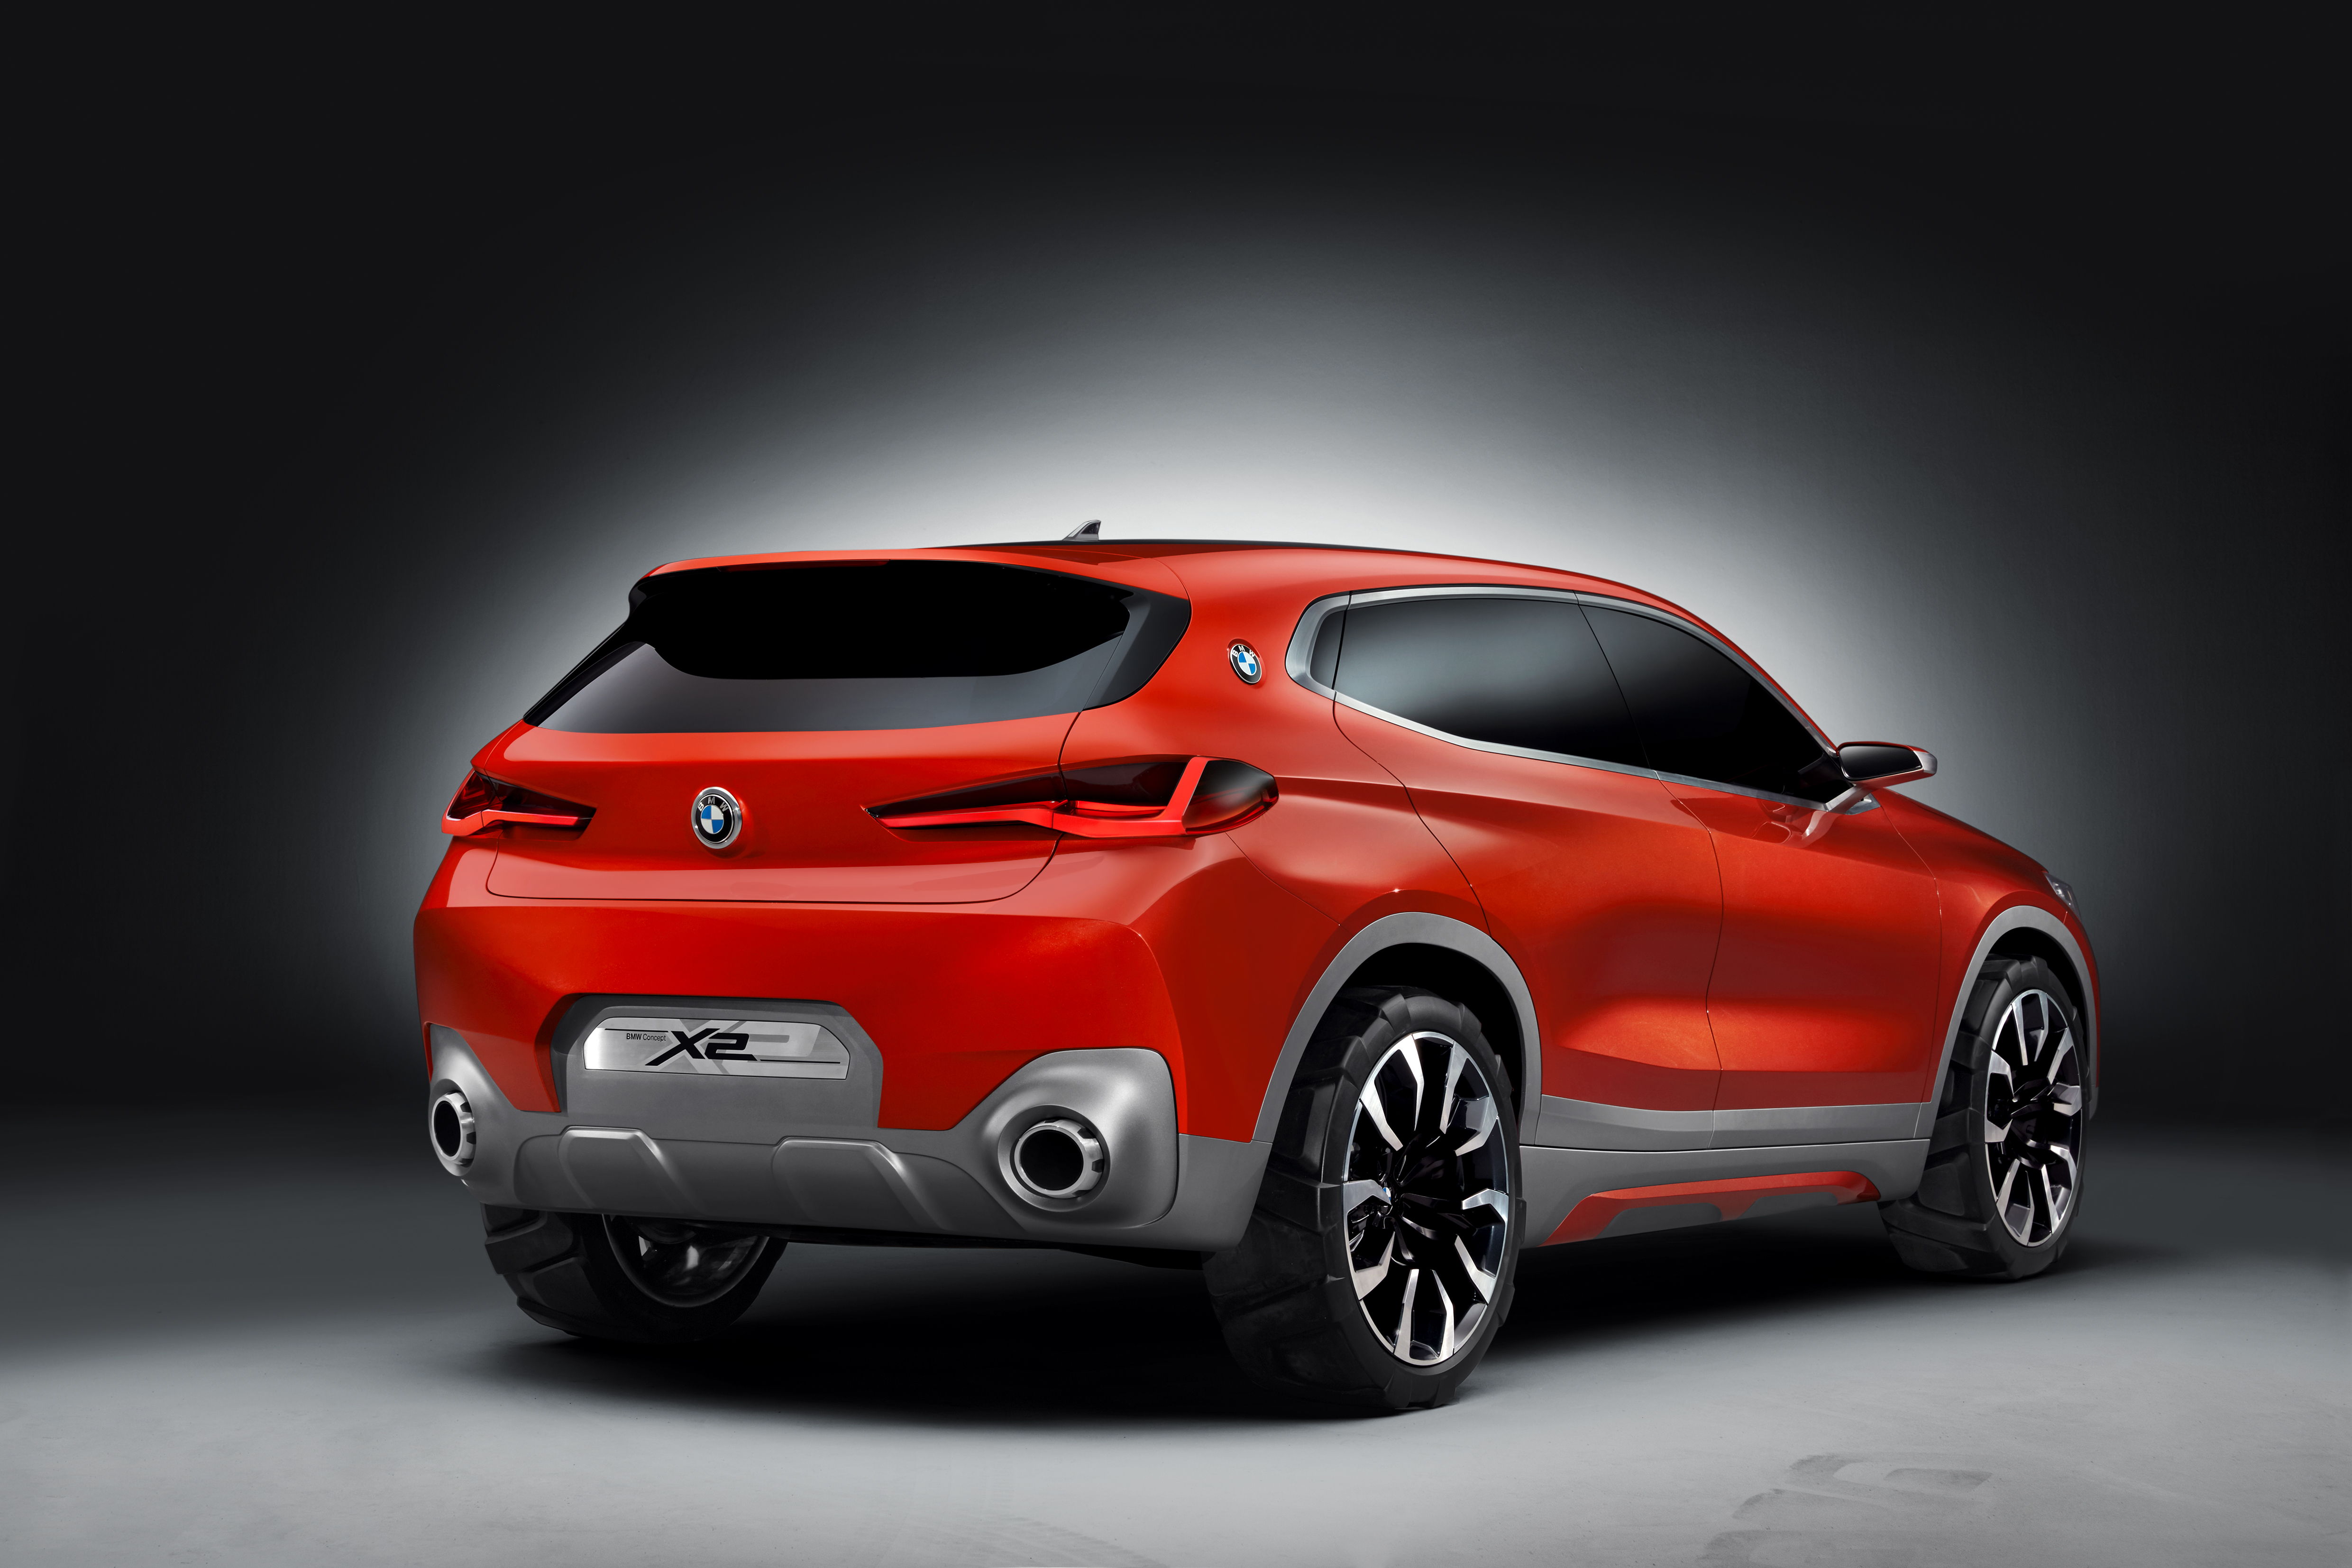 New Photos Of The Bmw Concept X2